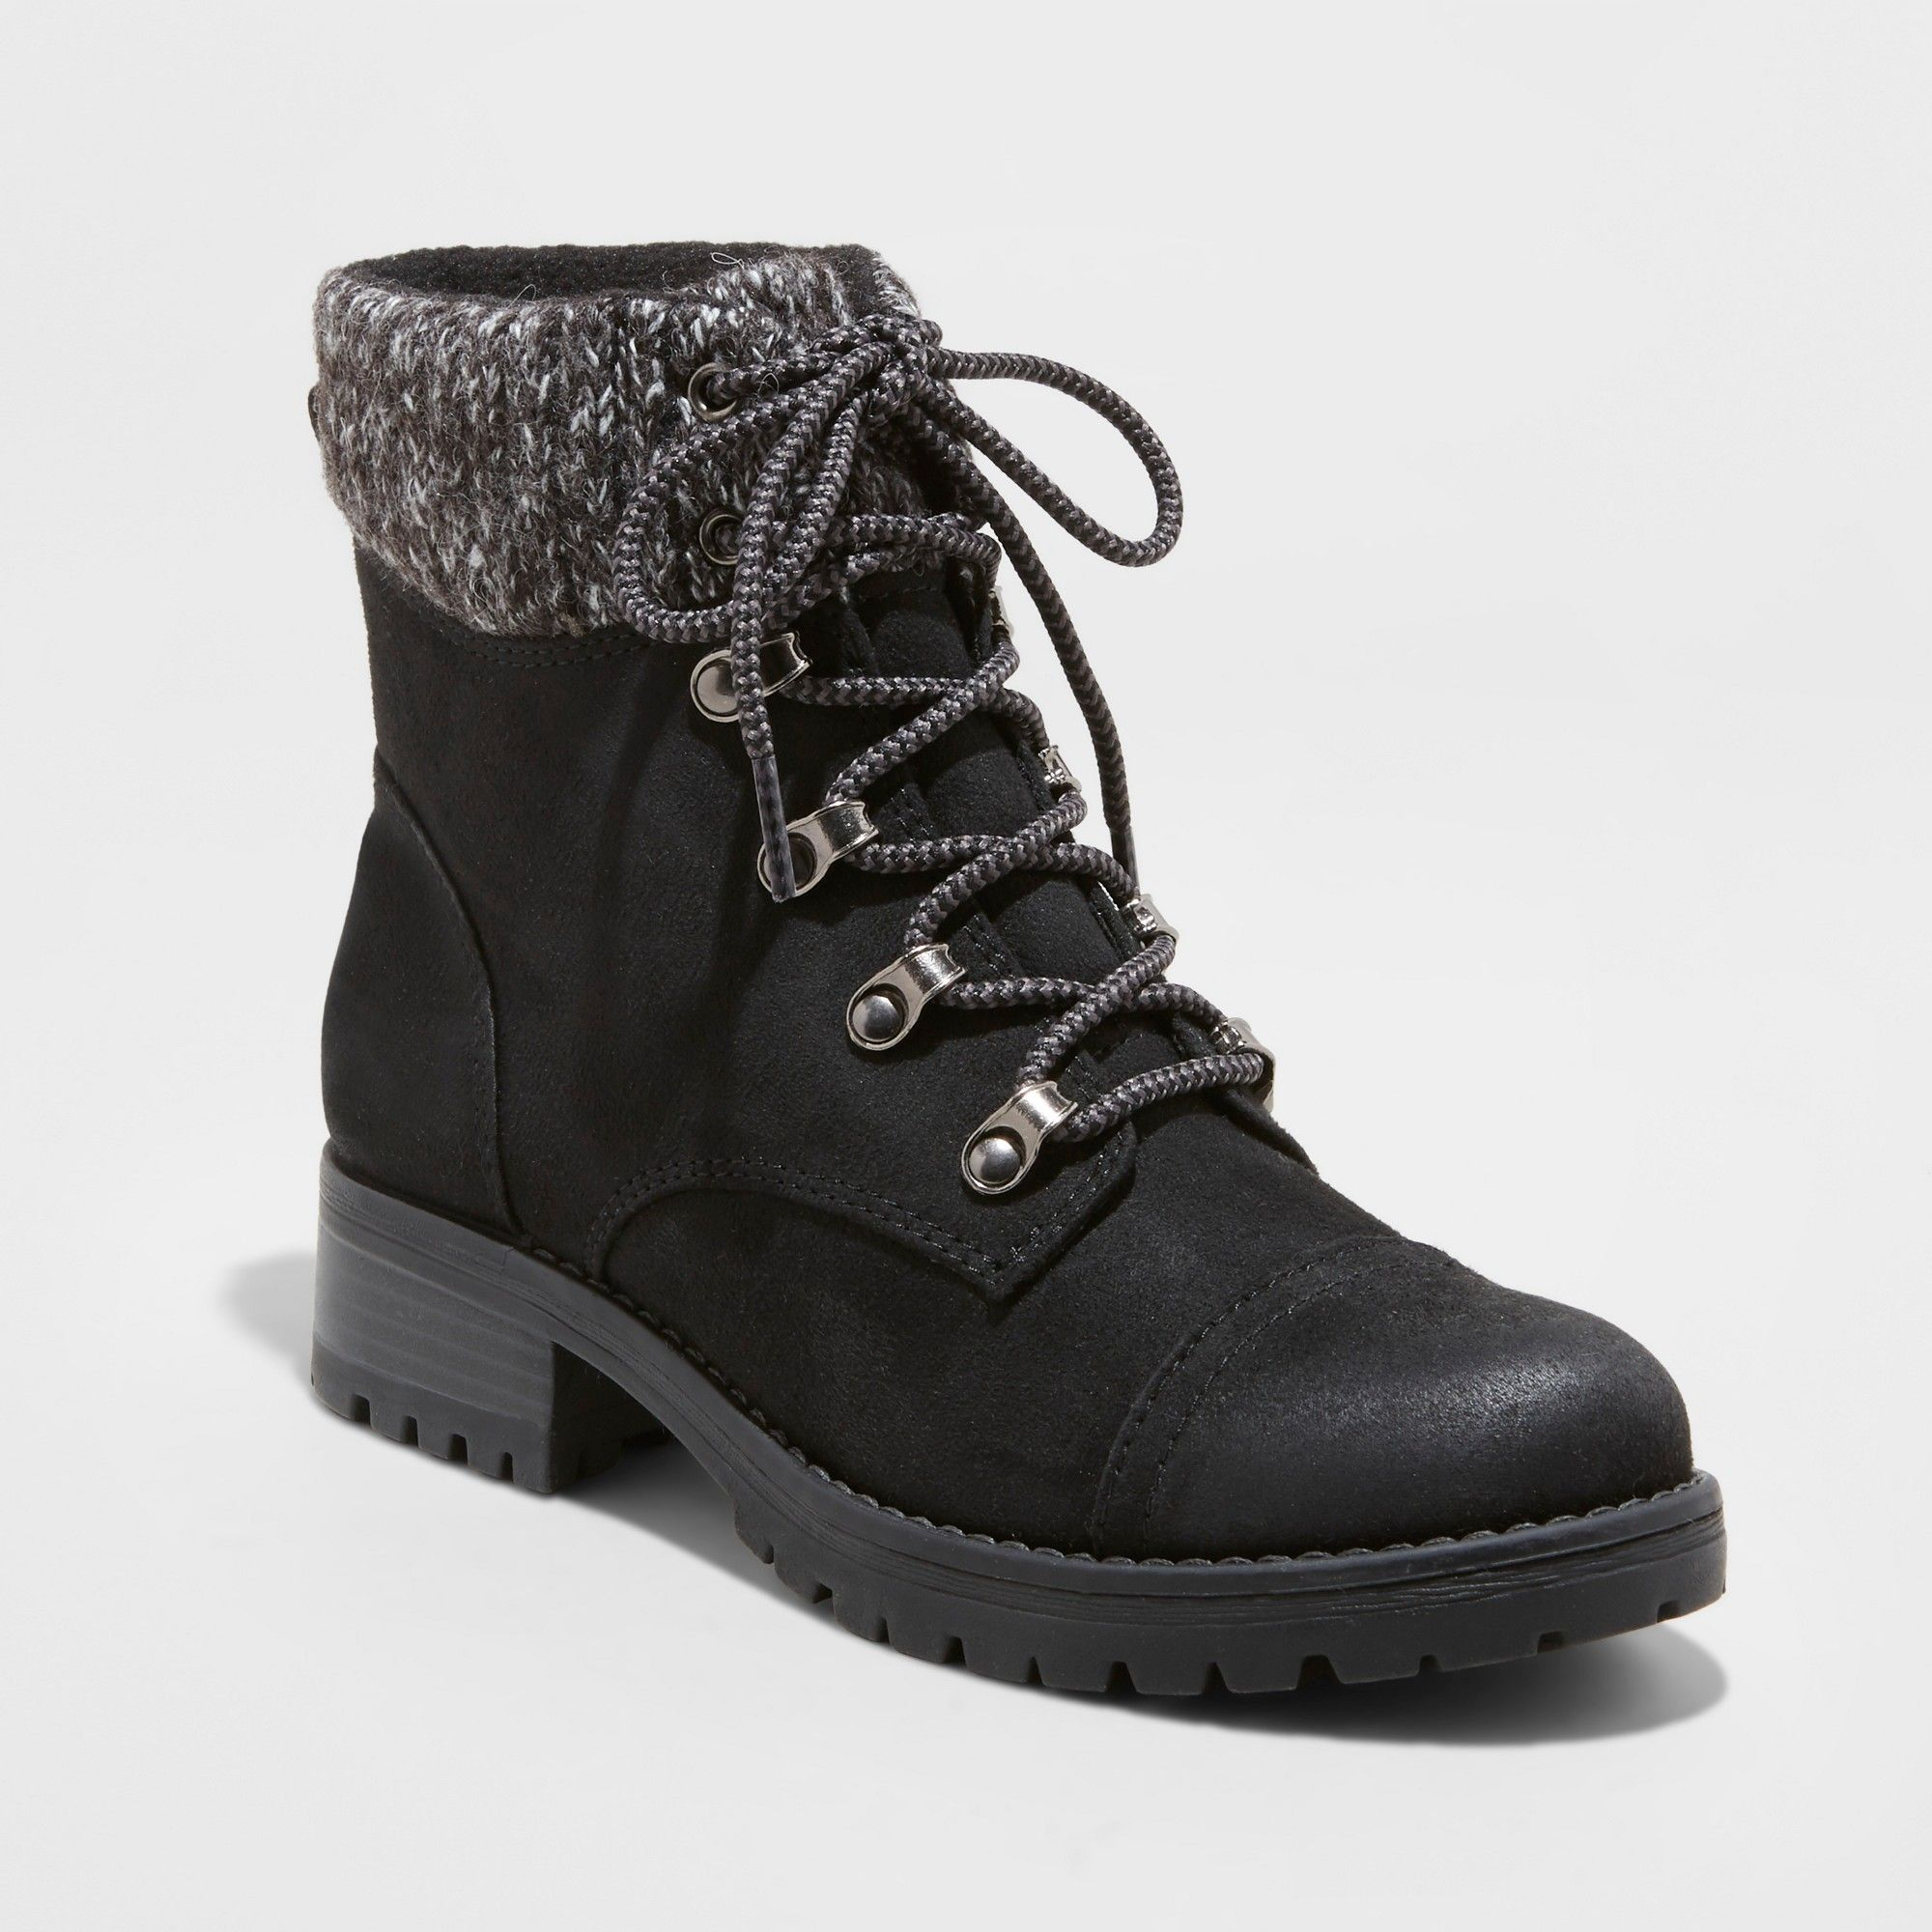 New Women Fold Over Faux Fur Shearling Lace Up Military